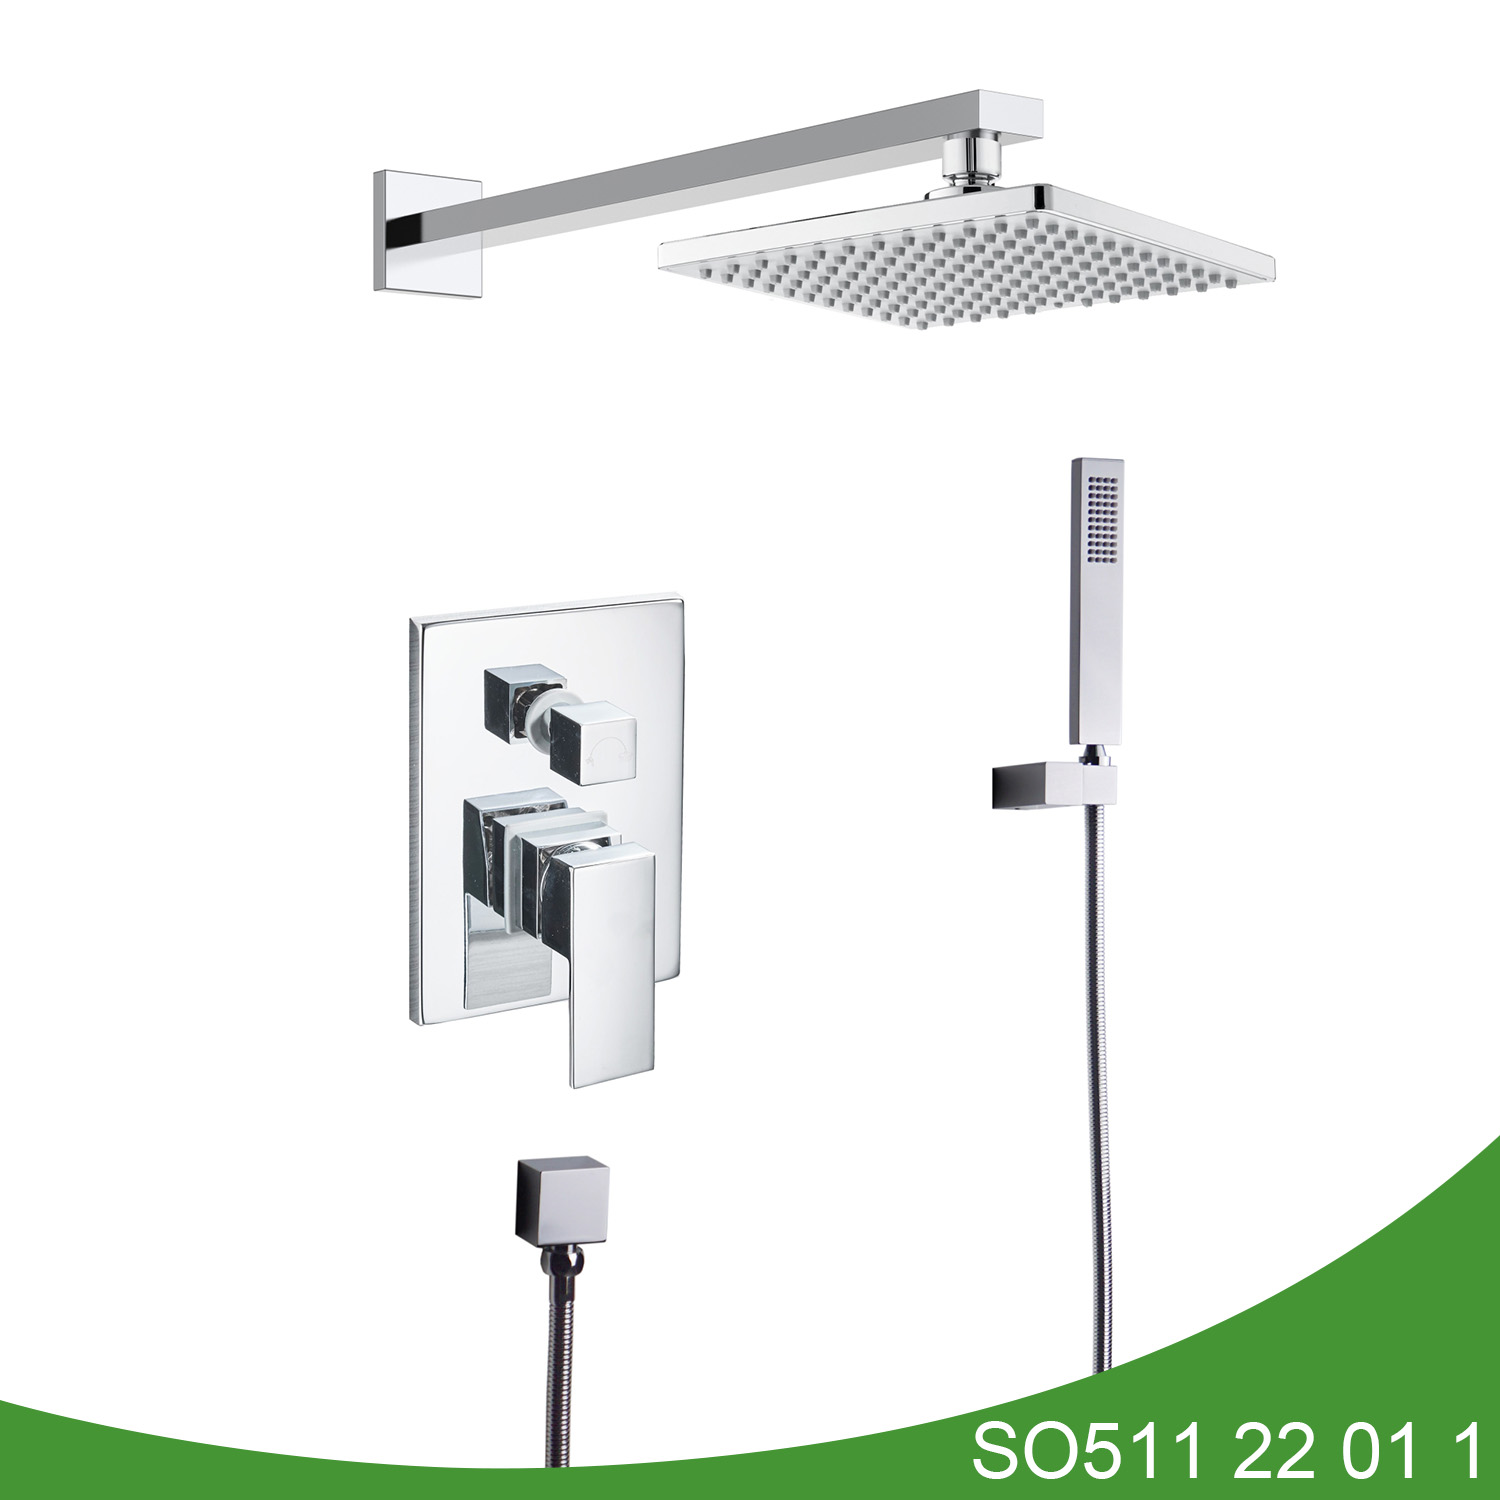 Hot and cold shower set SO511 22 01 1